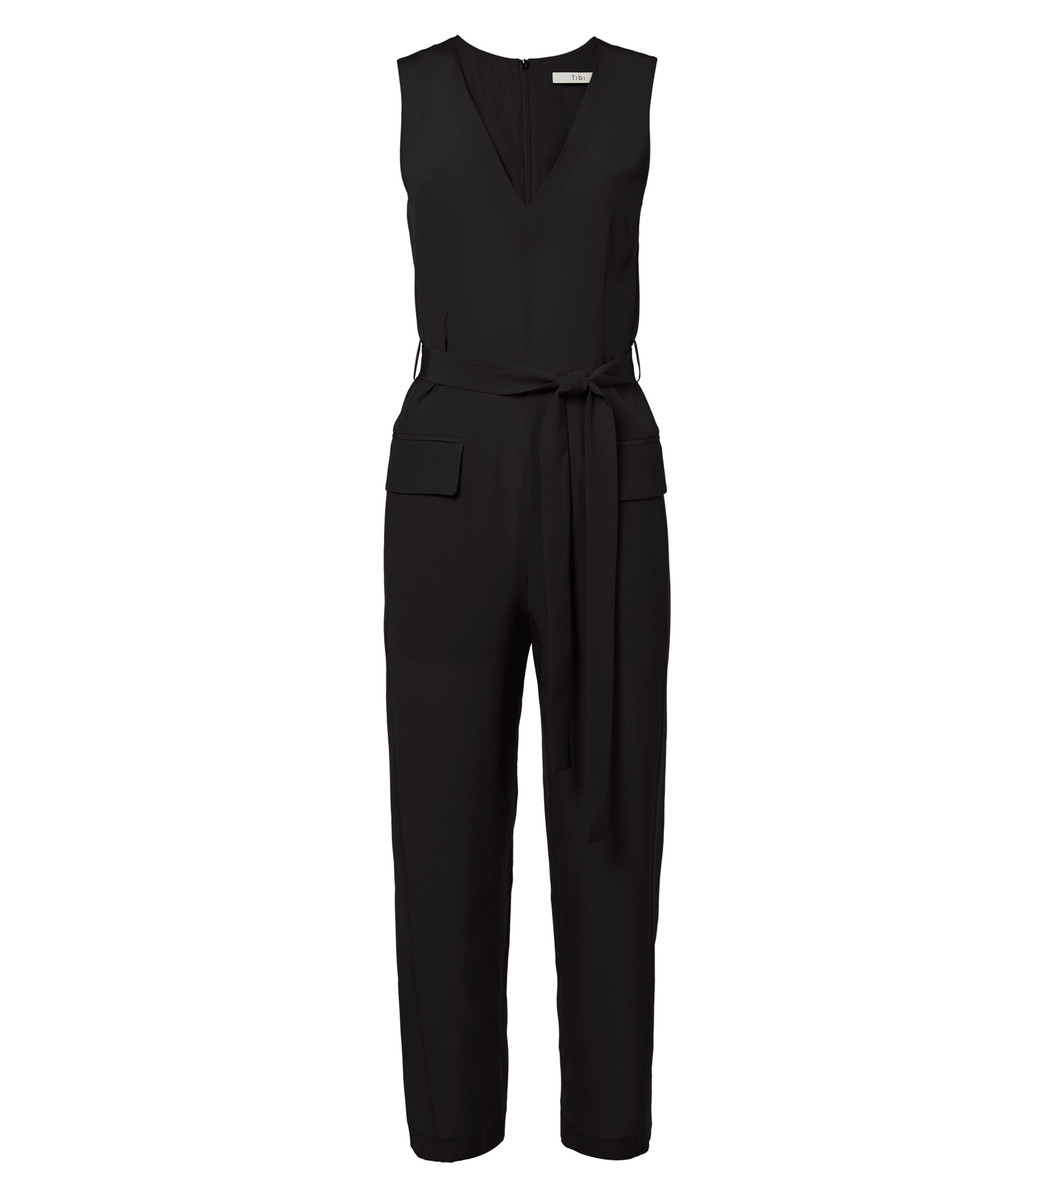 Silk Jumpsuit with Belt